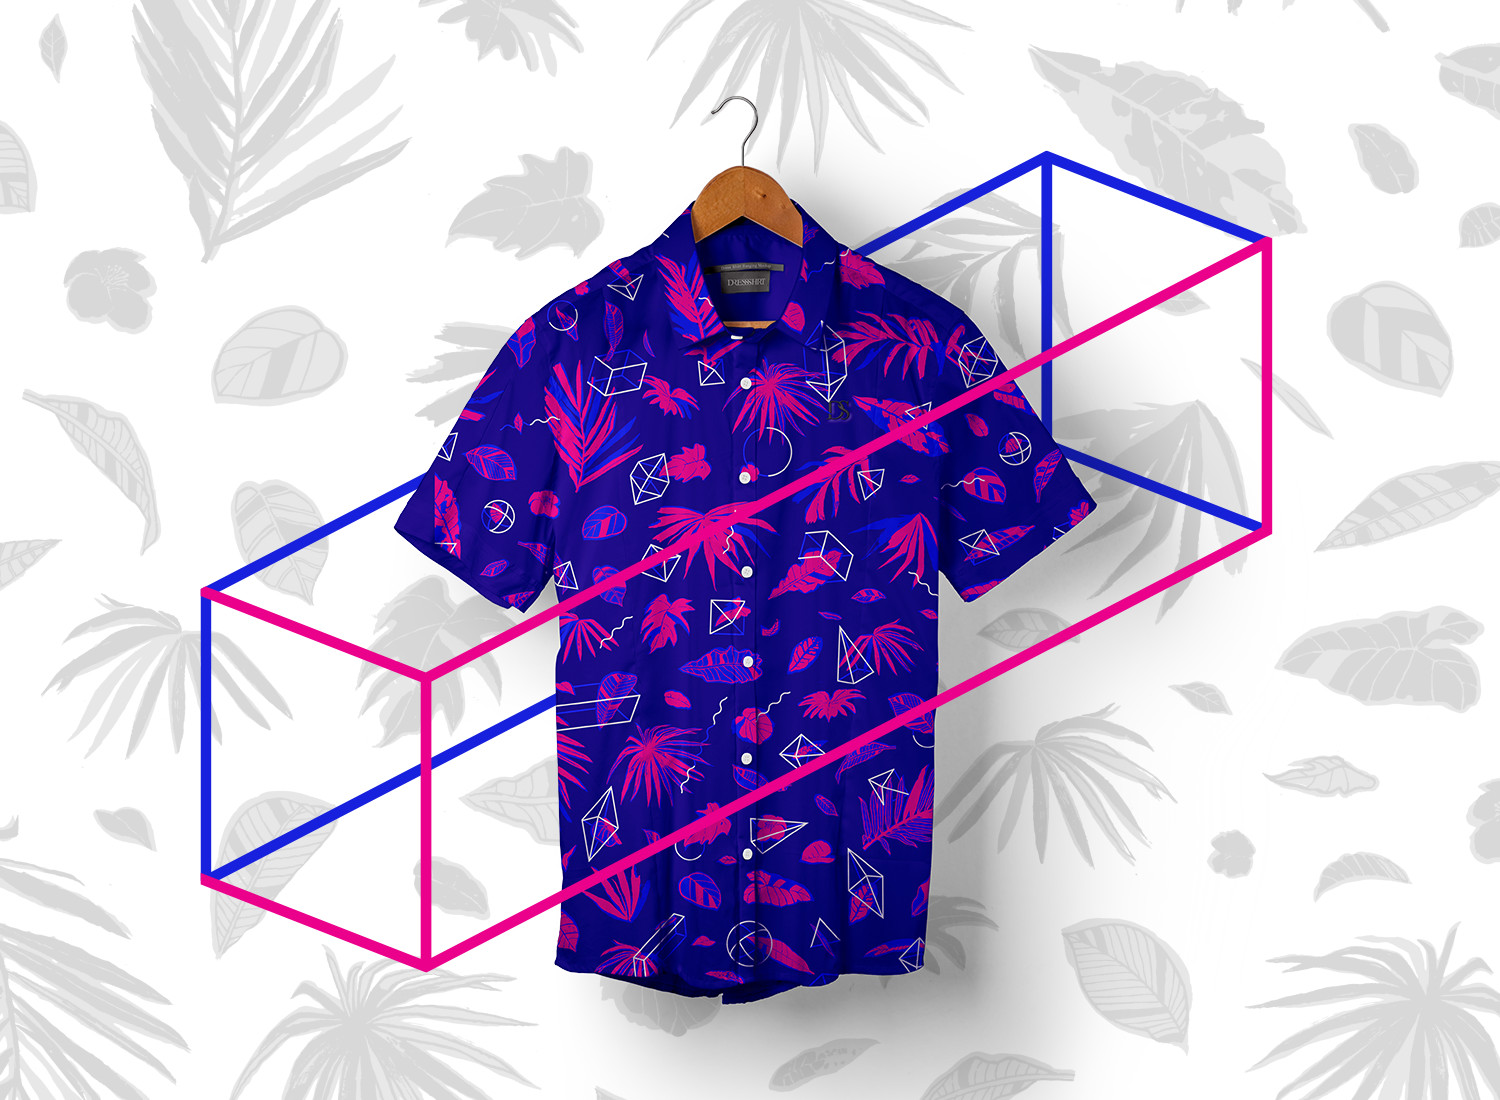 N E O N △ N I G H T color variation: button-down shirt concept submitted to Betabrand